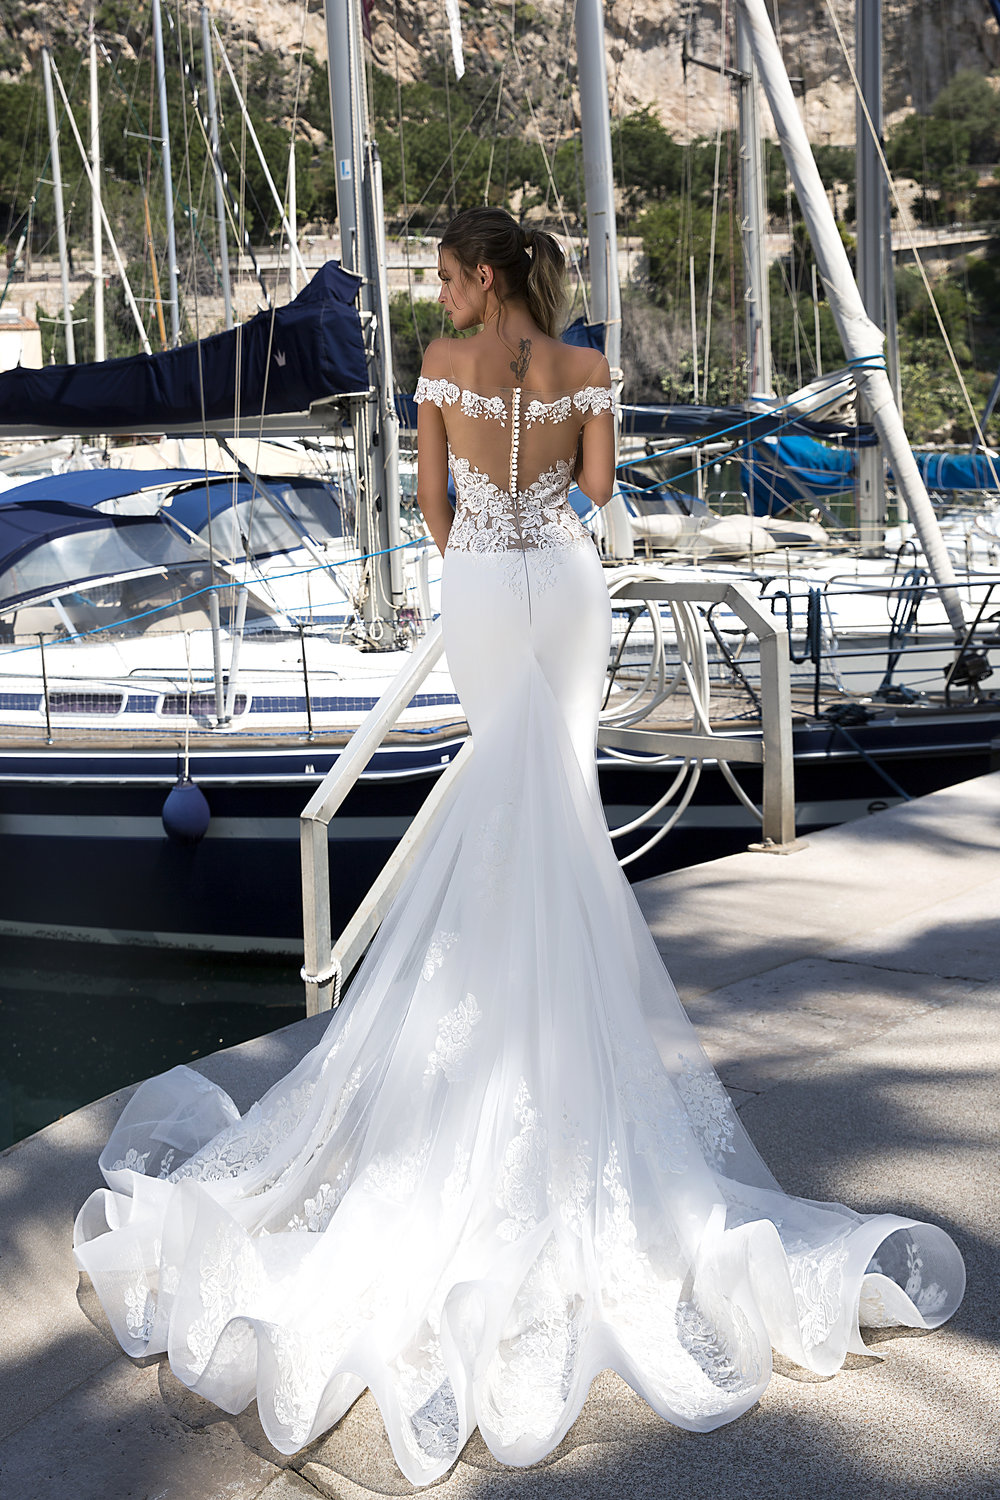 ALEKSANDRA wedding dress by TINA VALERDI